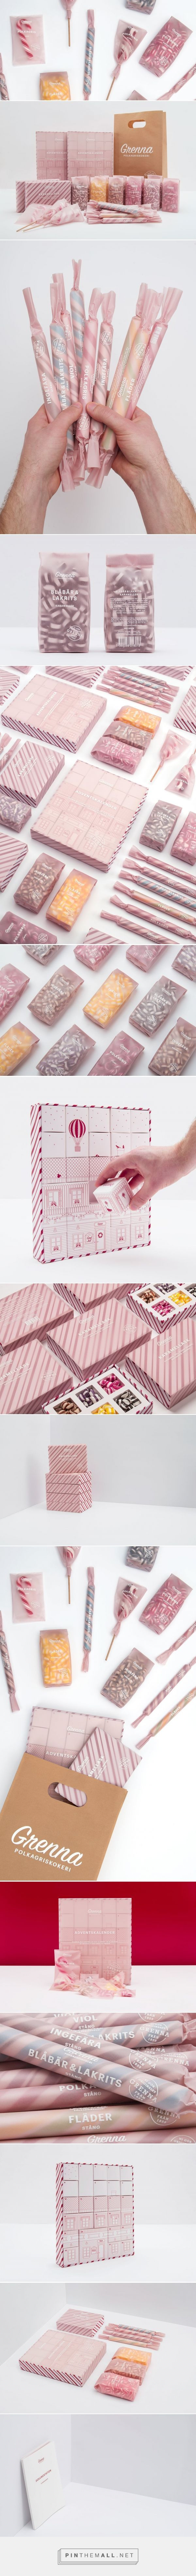 Candy Packaging - Grenna Polkagriskokeri